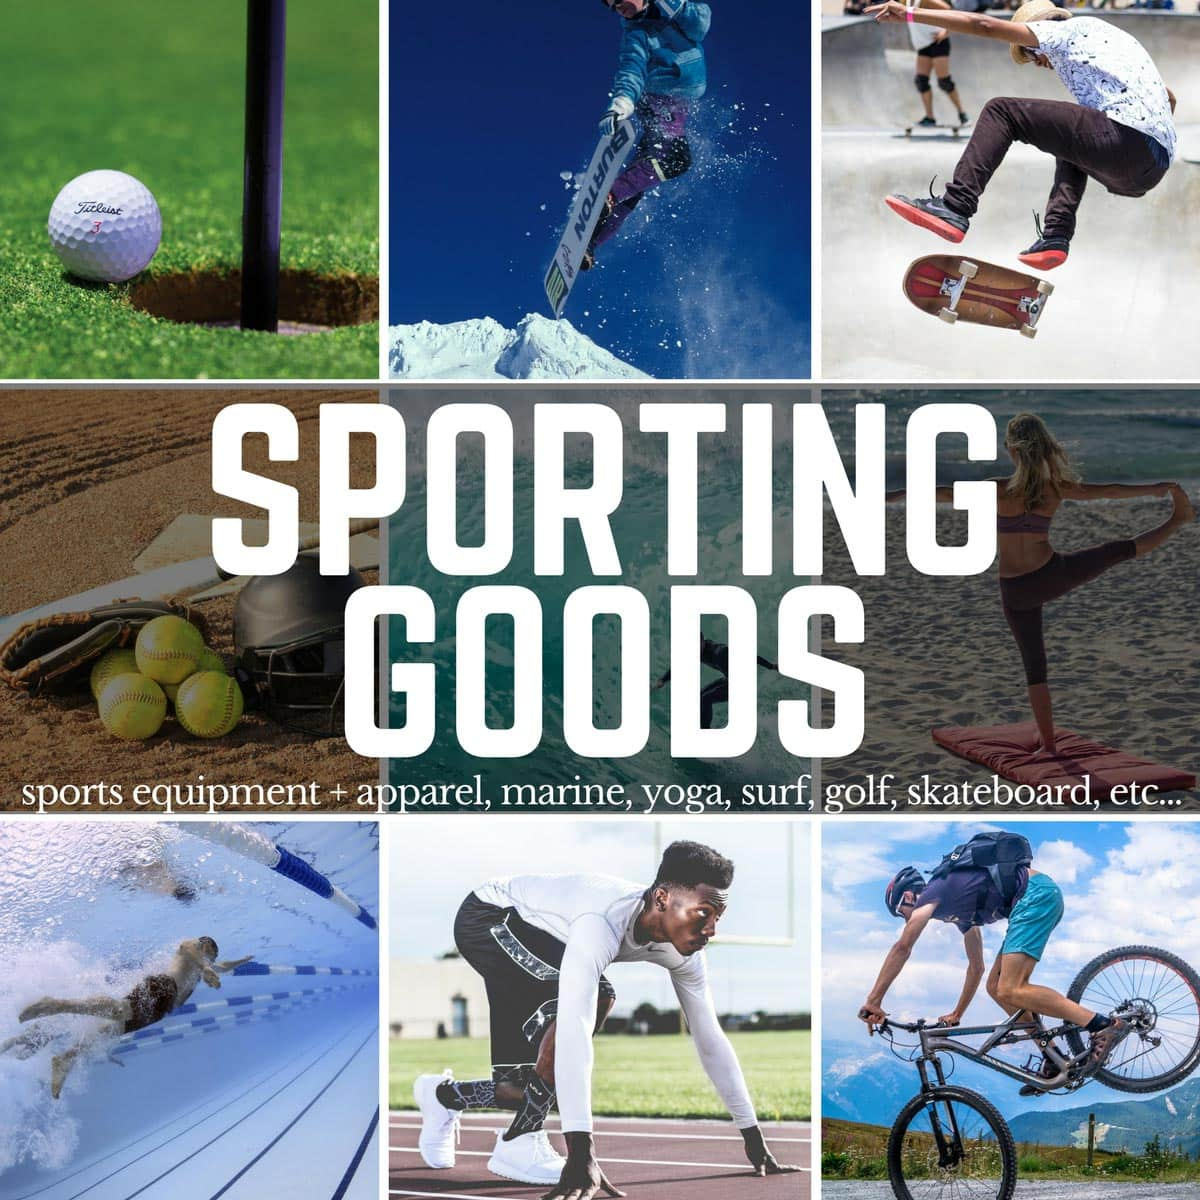 american made sporting goods, made in usa sporting goods, american made golf balls, made in usa golf balls, american made snowboard, made in usa snowboard, american made skis, made in usa skis, american made baseball bat, made in usa baseball bat, american made baseball glove, made in usa baseball glove, american made baseball, made in usa baseball, american made football, made in usa football, made in usa yoga pants, american made yoga pants, made in usa bicycle, american made bicycle, made in usa gym clothes, made in america gym clothes, made in usa gym equipment, american made gym equipment, made in usa products list, made in america products list, american made products list